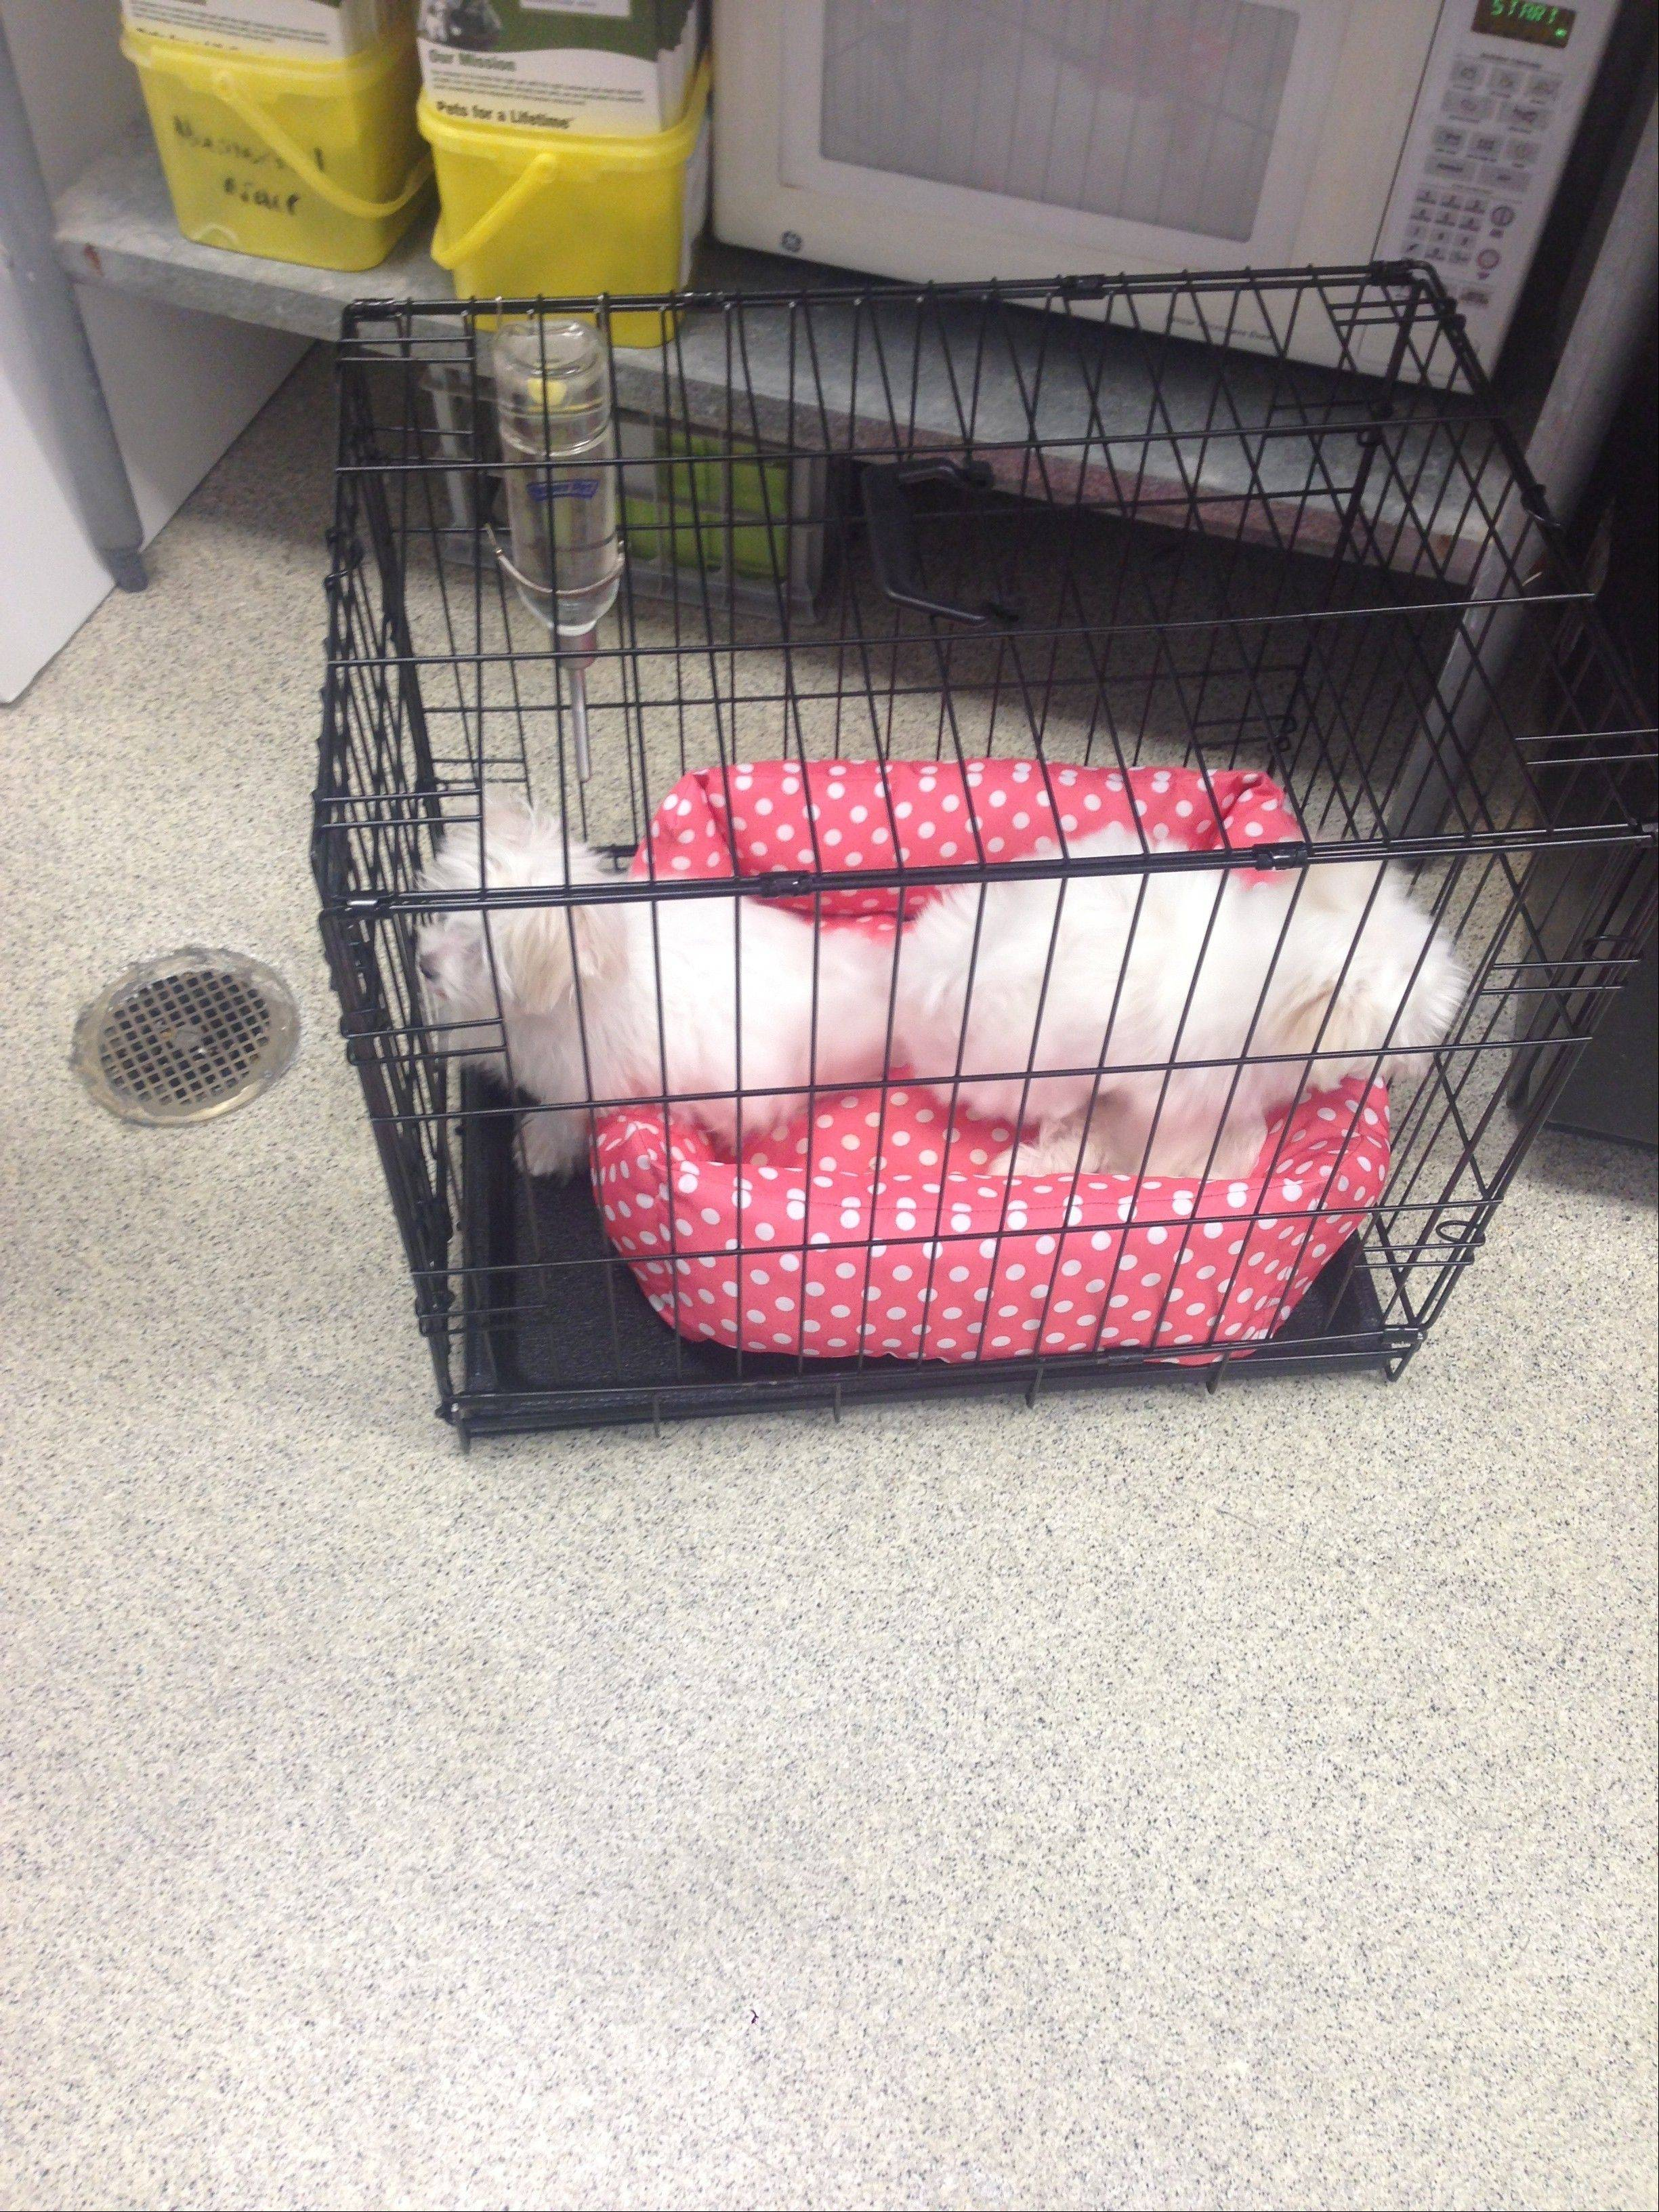 Two puppies stolen from Petland stores in Bolingbrook and Naperville were returned Sunday in this kennel to a Petland store near St. Louis. The puppies are expected back in Illinois by Tuesday.